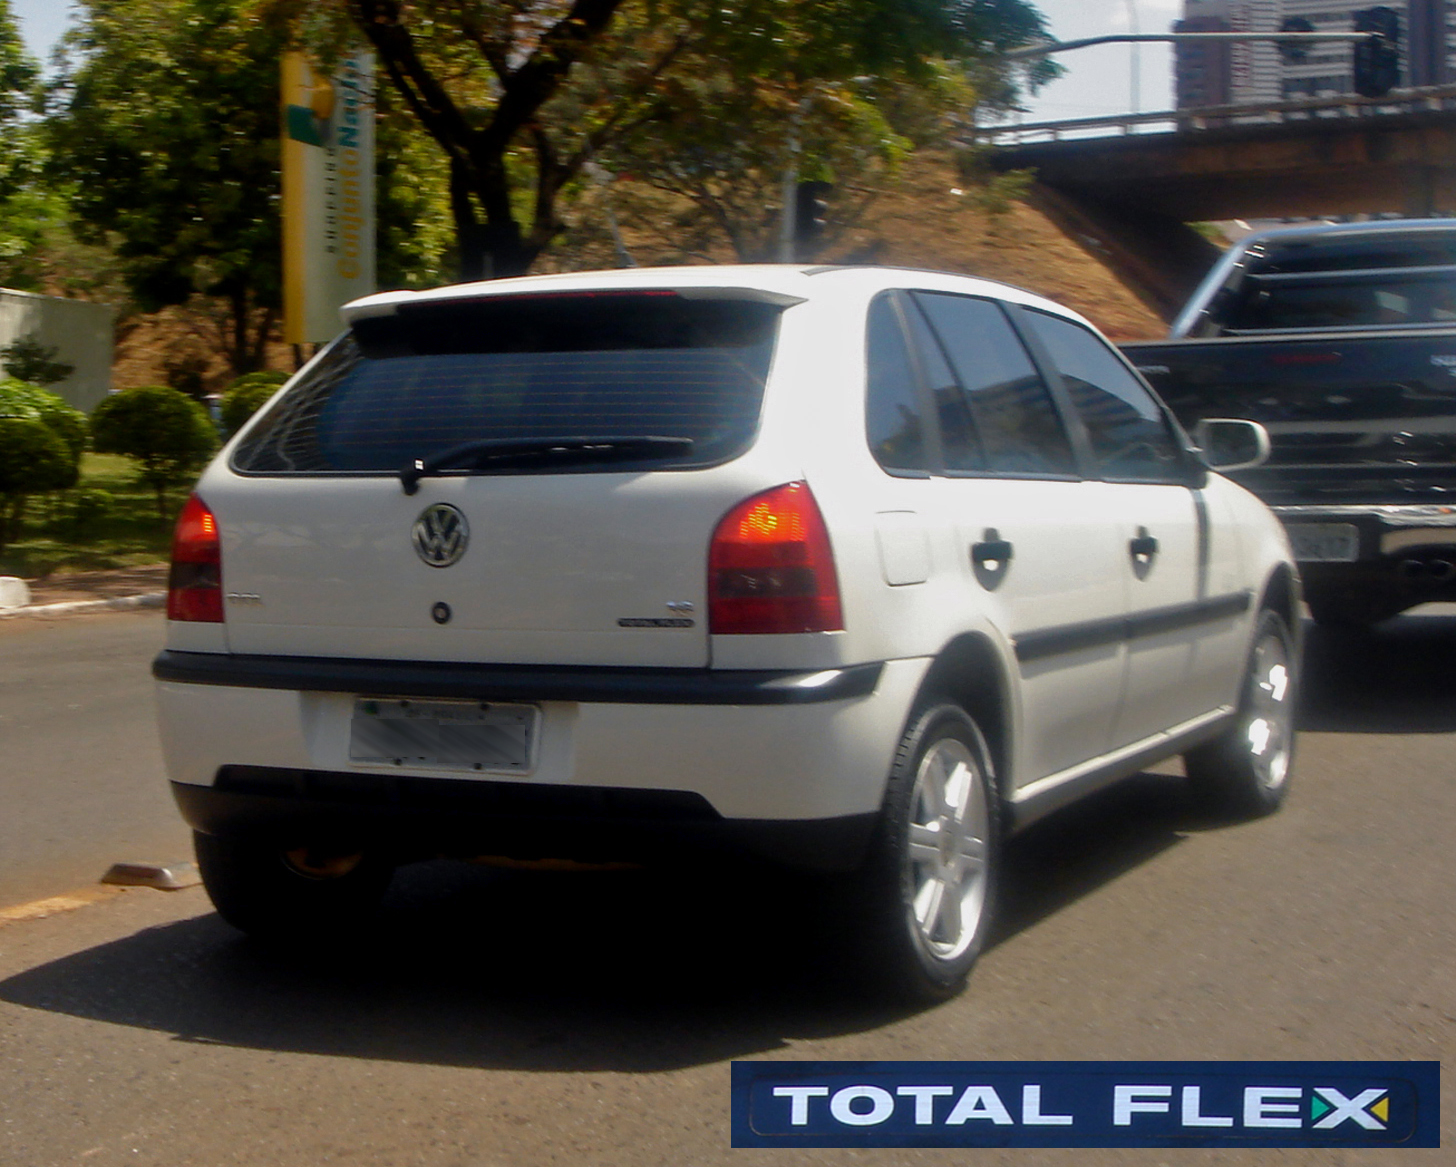 3d1c5bc162757 The 2003 Volkswagen Gol 1.6 Total Flex was the first flexible-fuel vehicle  produced and sold in Brazil.